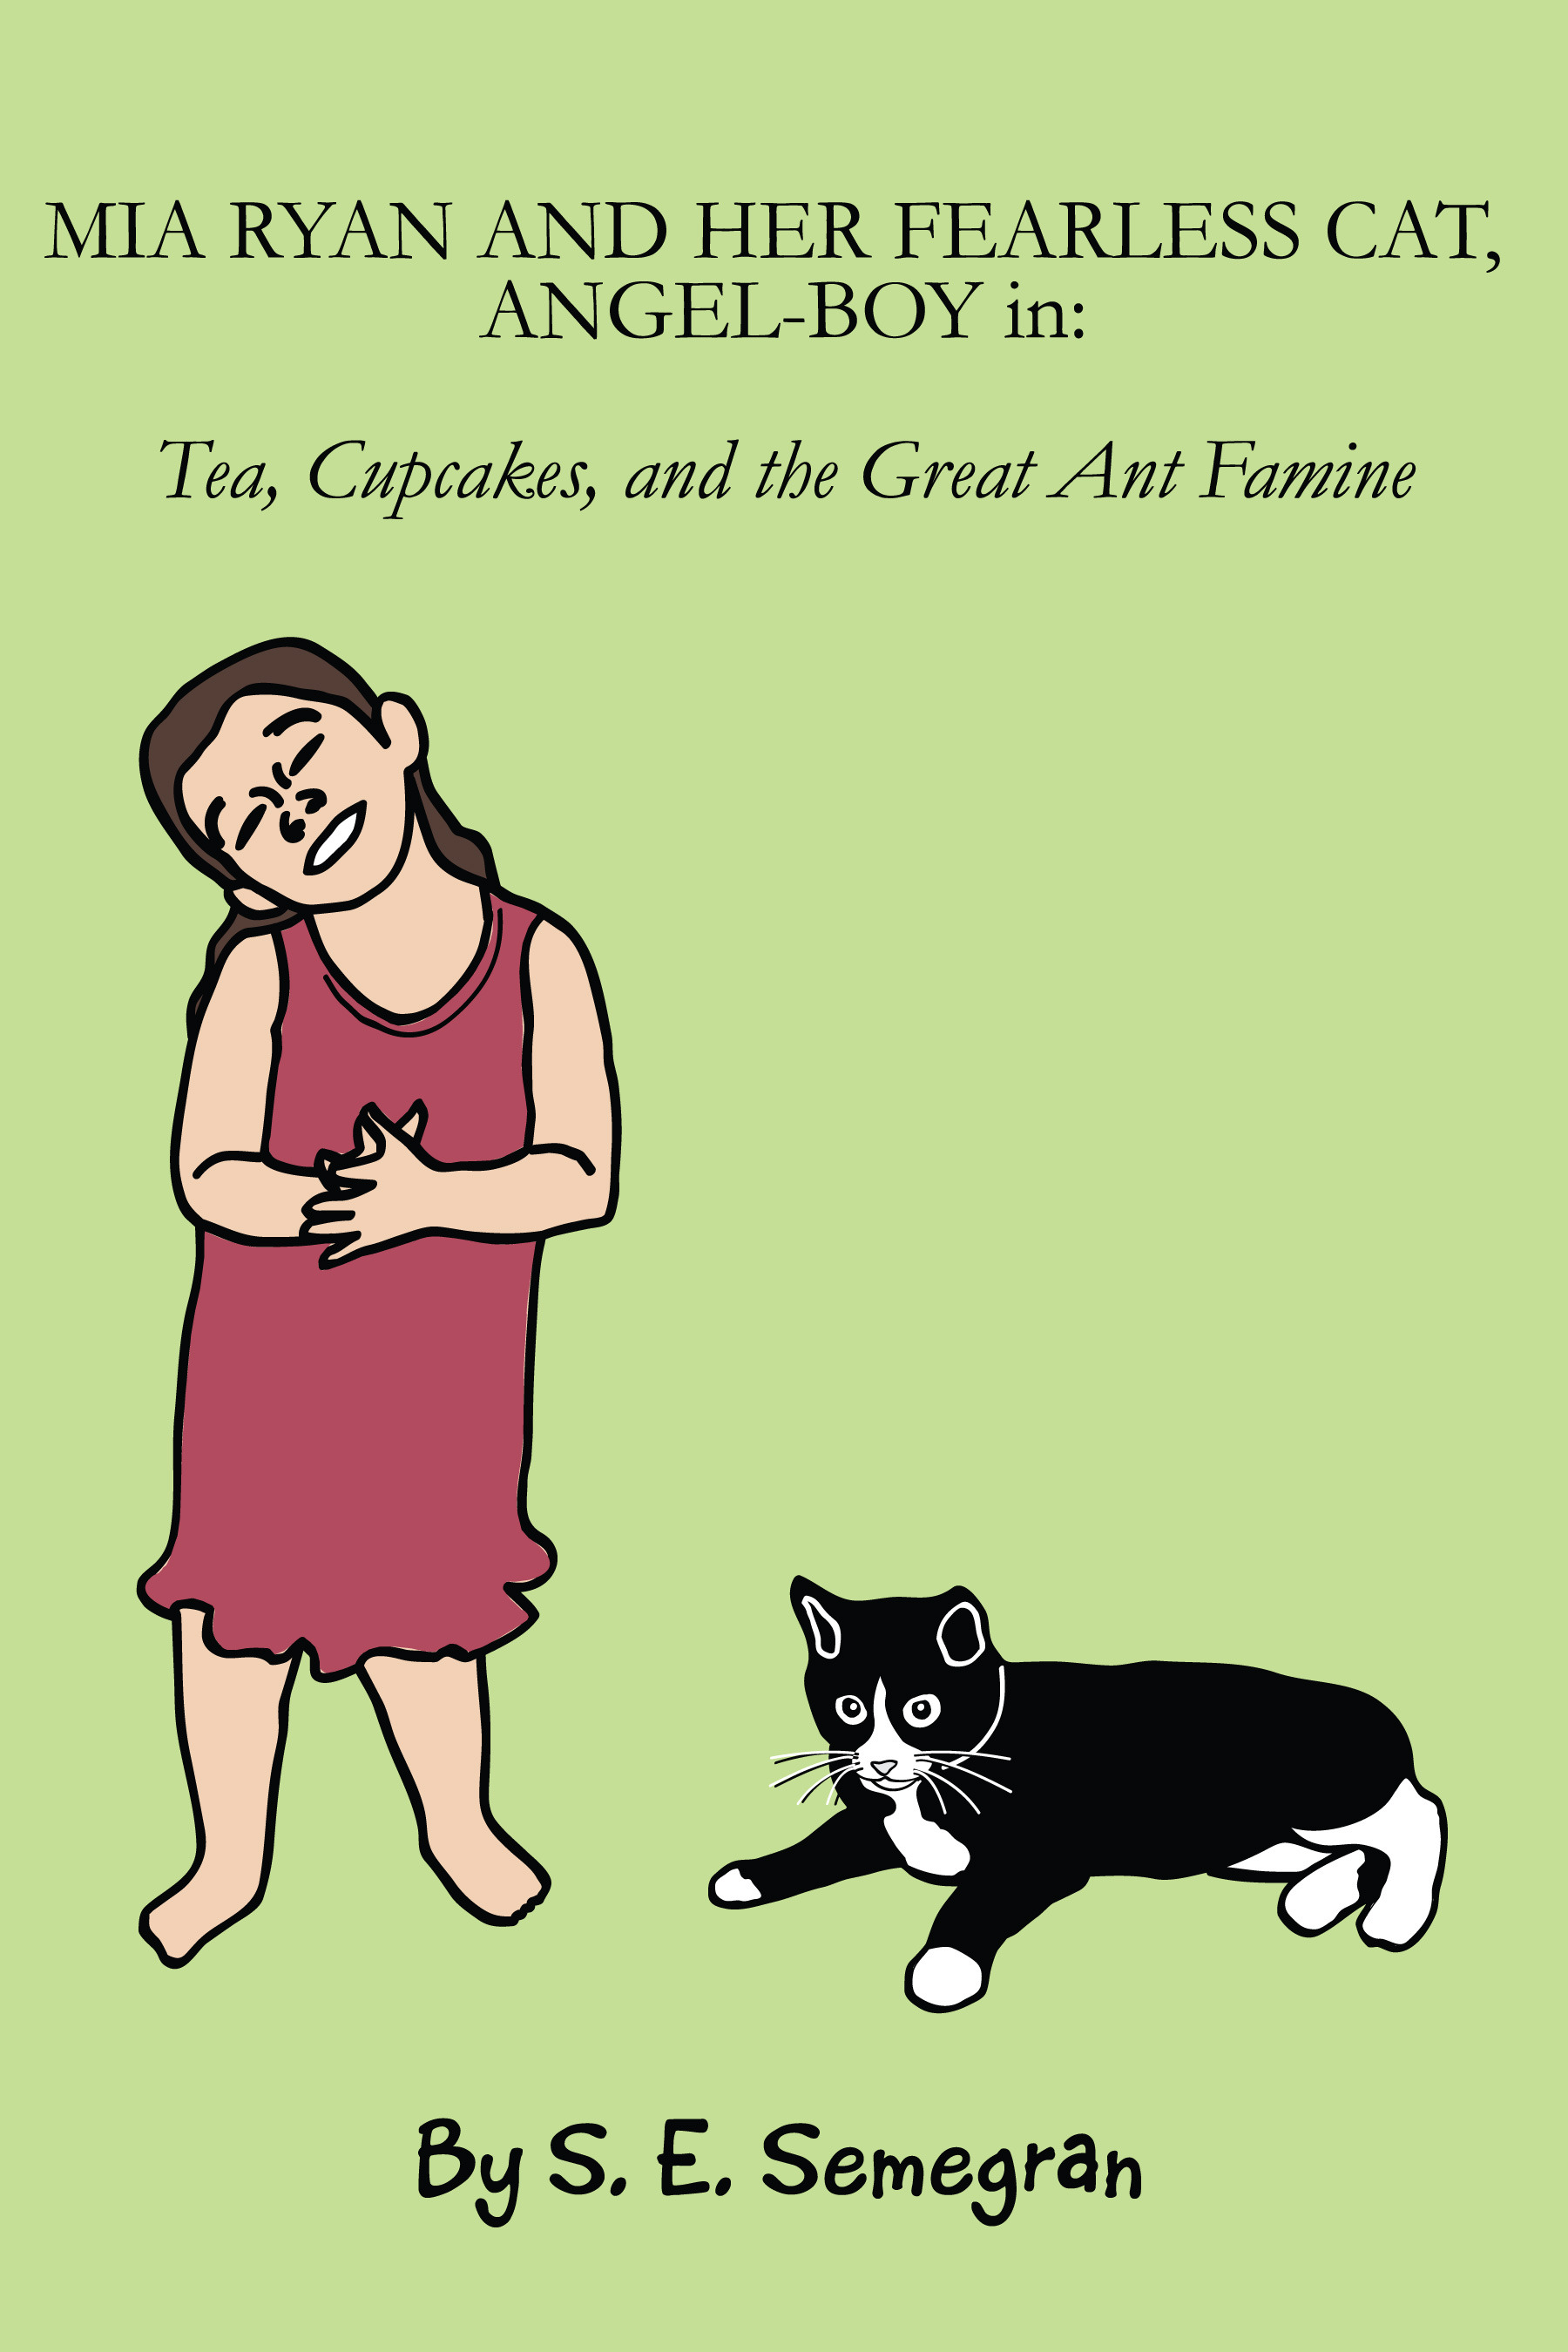 Mia Ryan And Her Fearless Cat, Angel-Boy in: Tea, Cupcakes, and the Great Ant Famine